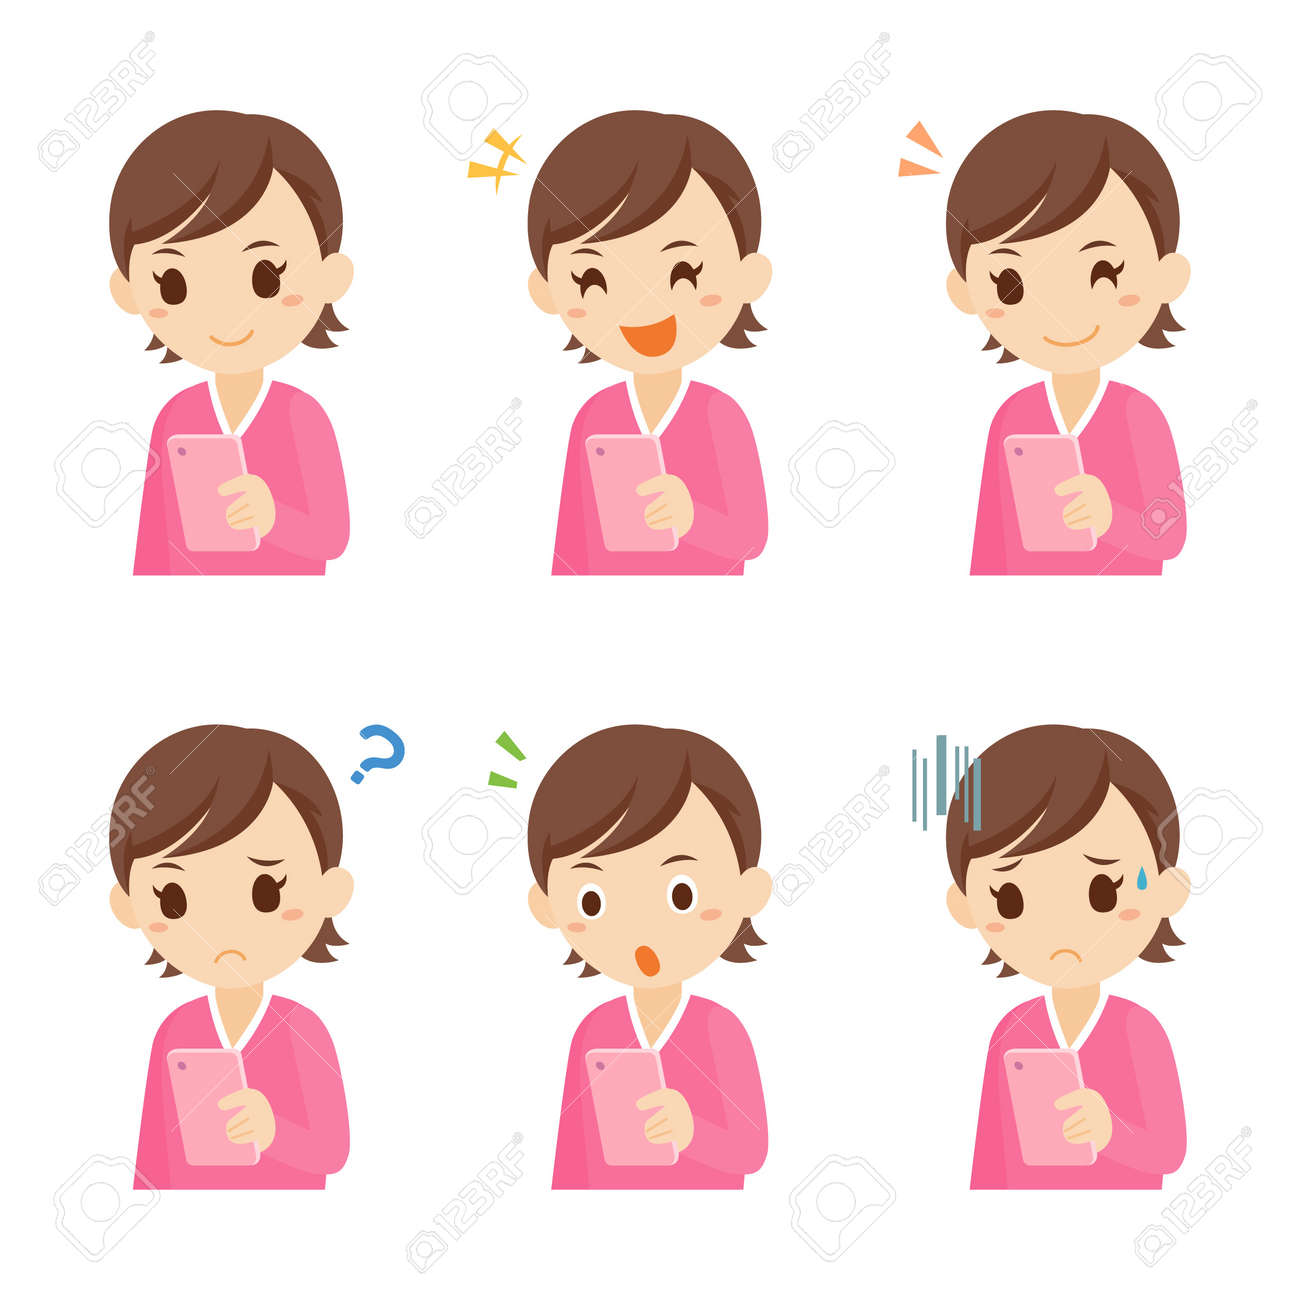 Girl with Mobile Smartphone Facial Expression Pose - 168556935